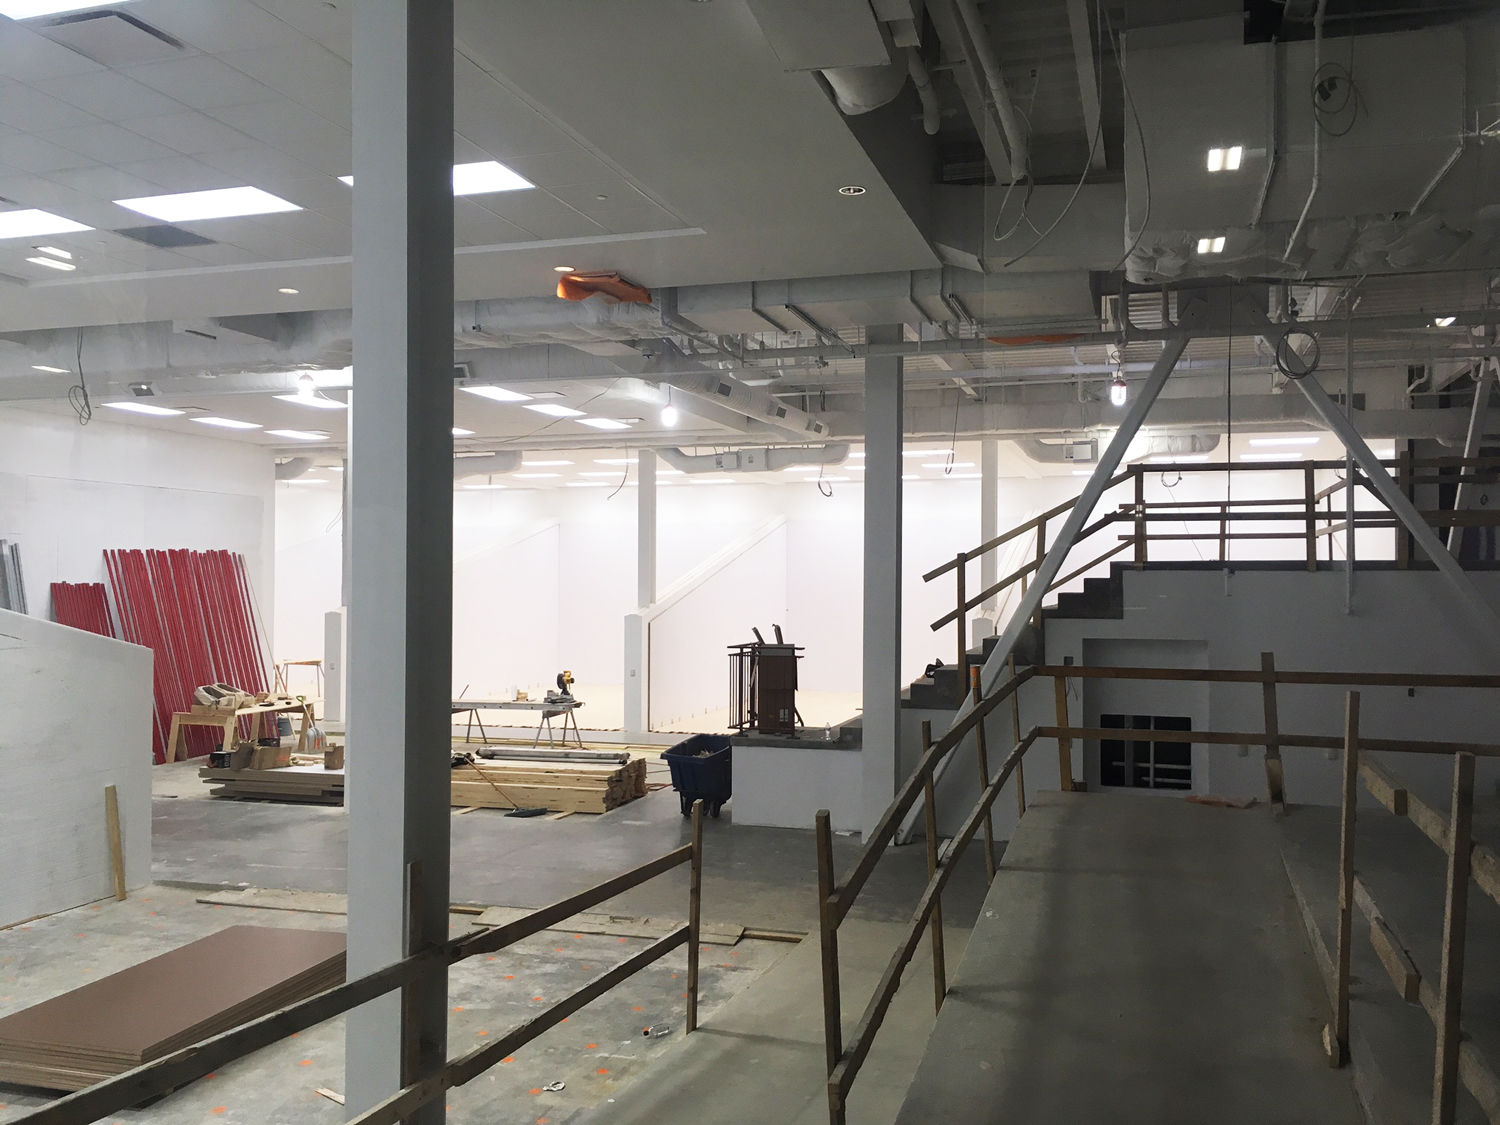 Other amenities include a gymnastics pit, a rock climbing wall, batting cages, golf simulators, virtual reality rooms, and a number of squash courts, pictured here. (WTOP/Noah Frank)